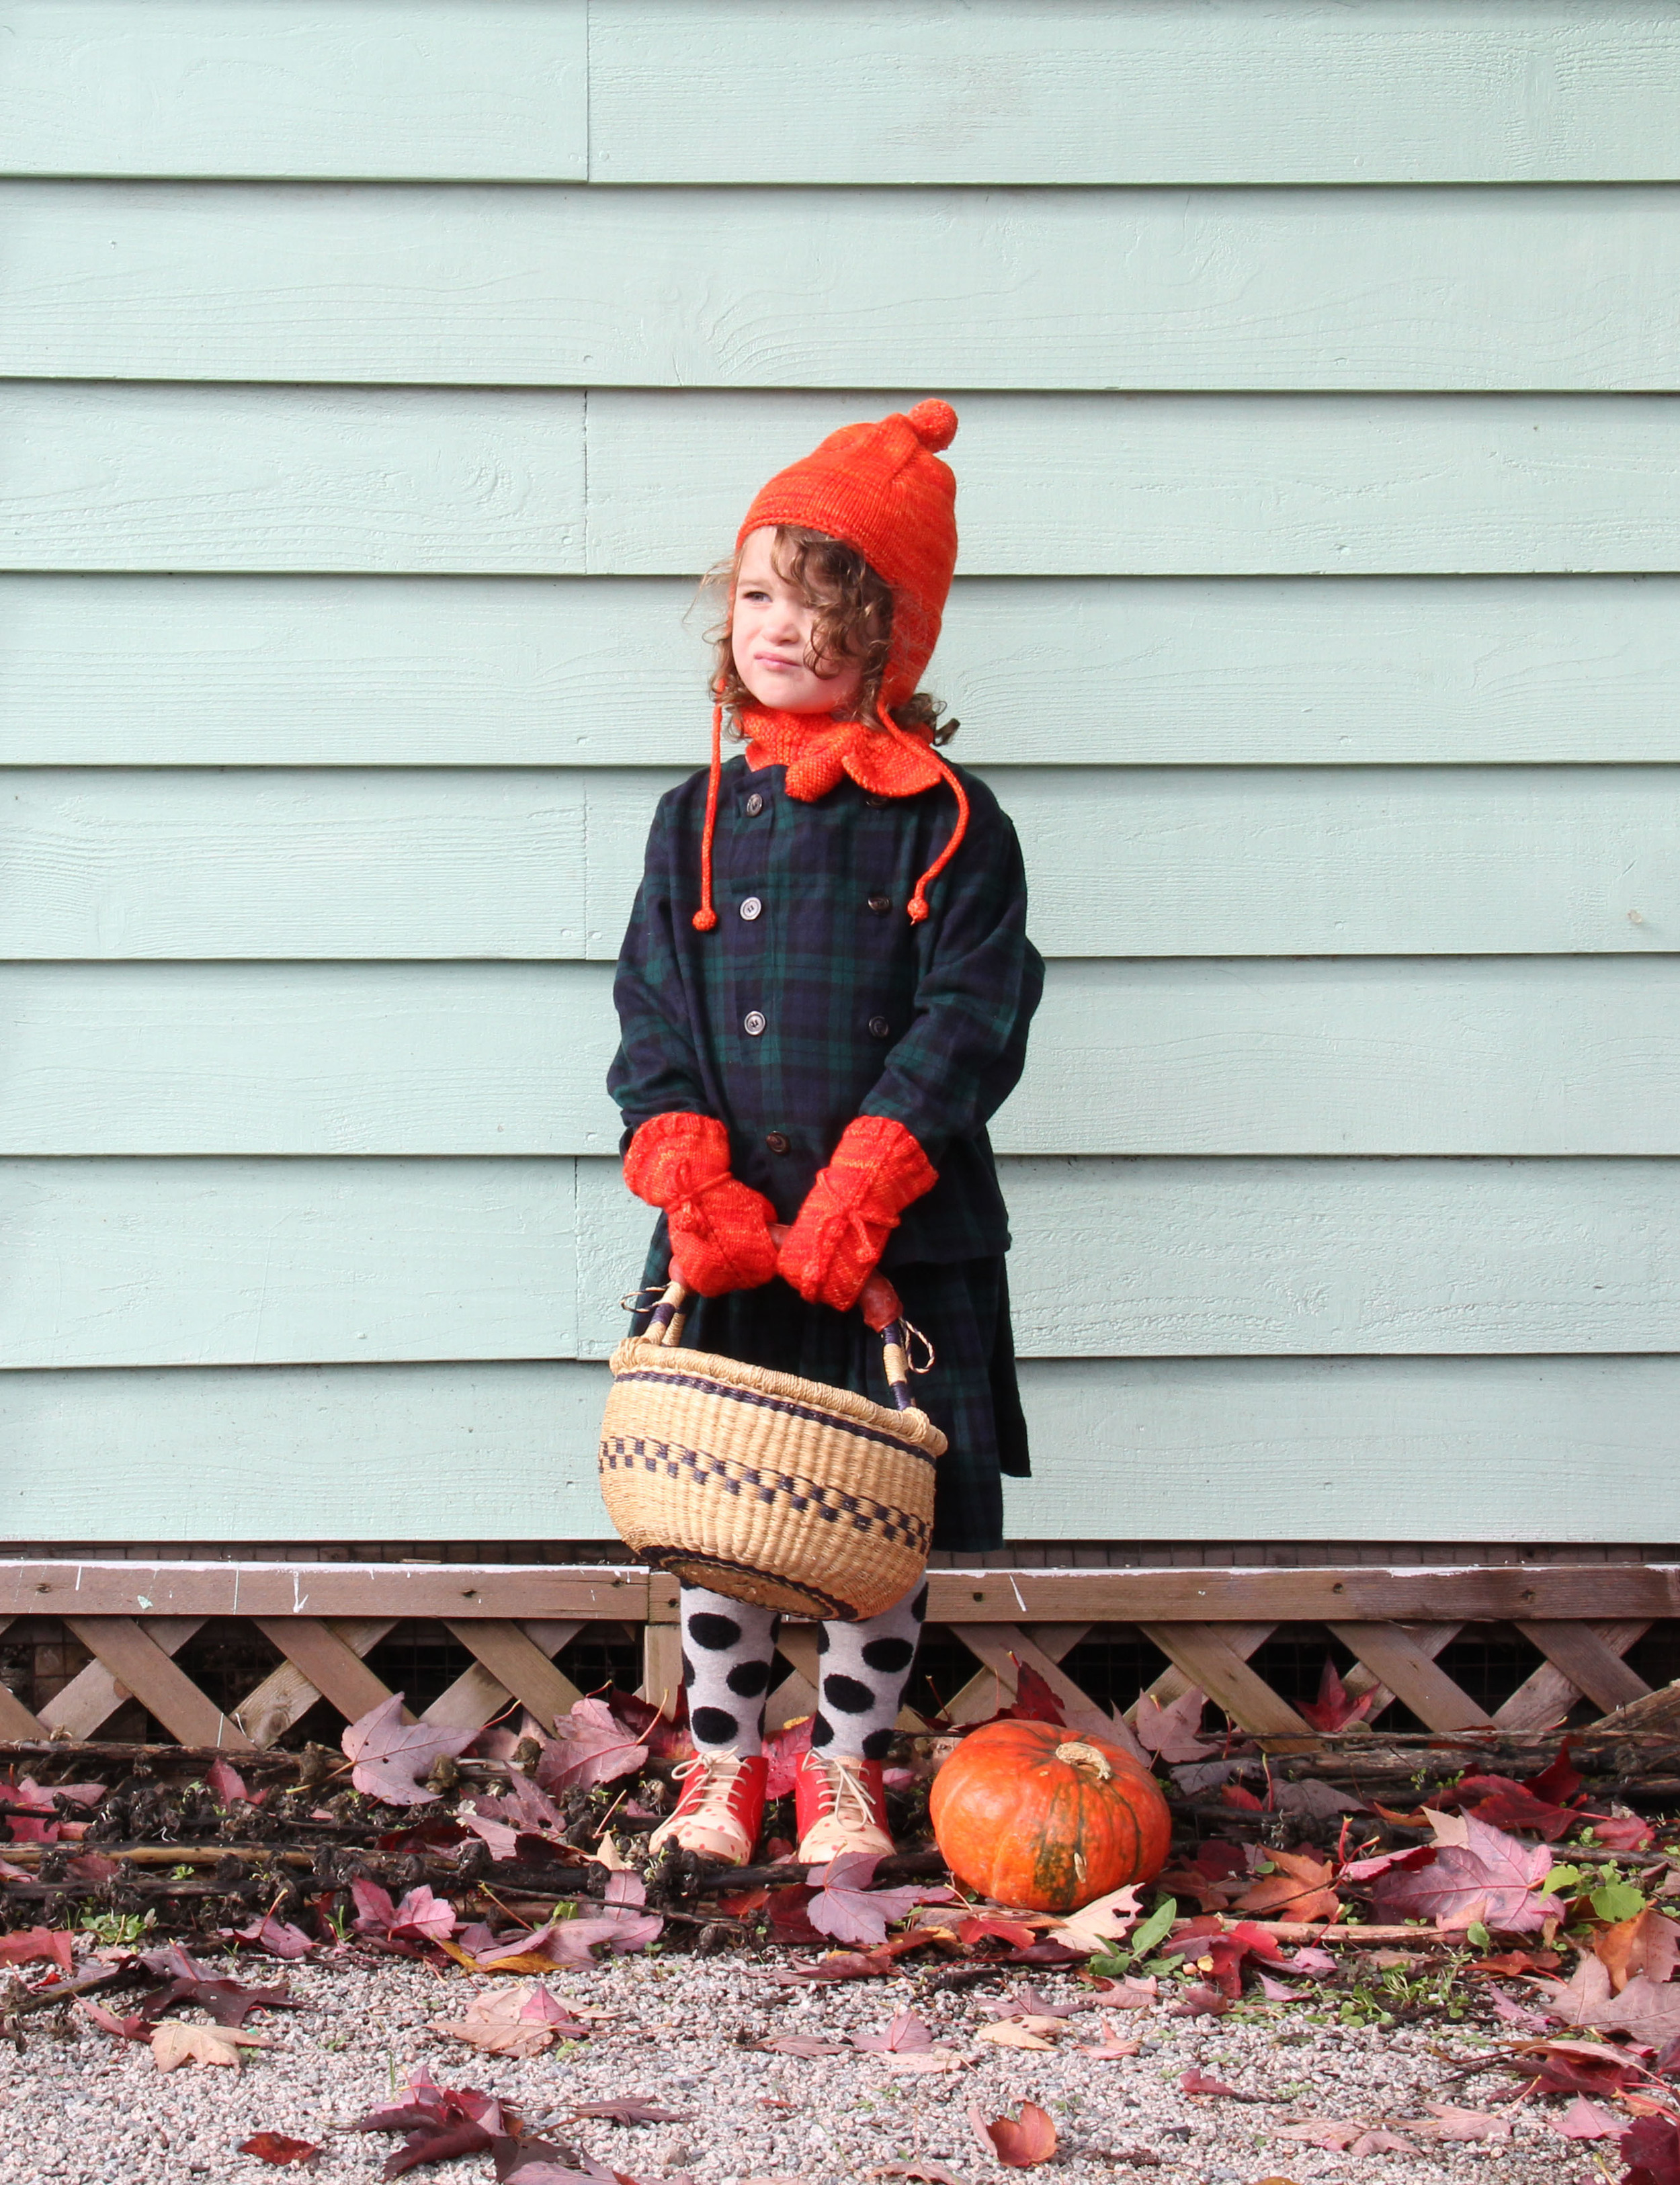 Misha and Puff Pointy Peak Hat  |  Sledding Scarf  |  Snowshoe Hare Mittens in Persimmon  |  Nico Nico Ramsey Button Down  |  Wynona skirt in Forest Plaid  |  Hansel from Basel Polka Dot Tights  |  Nathalie Verlinden Mingus Booties